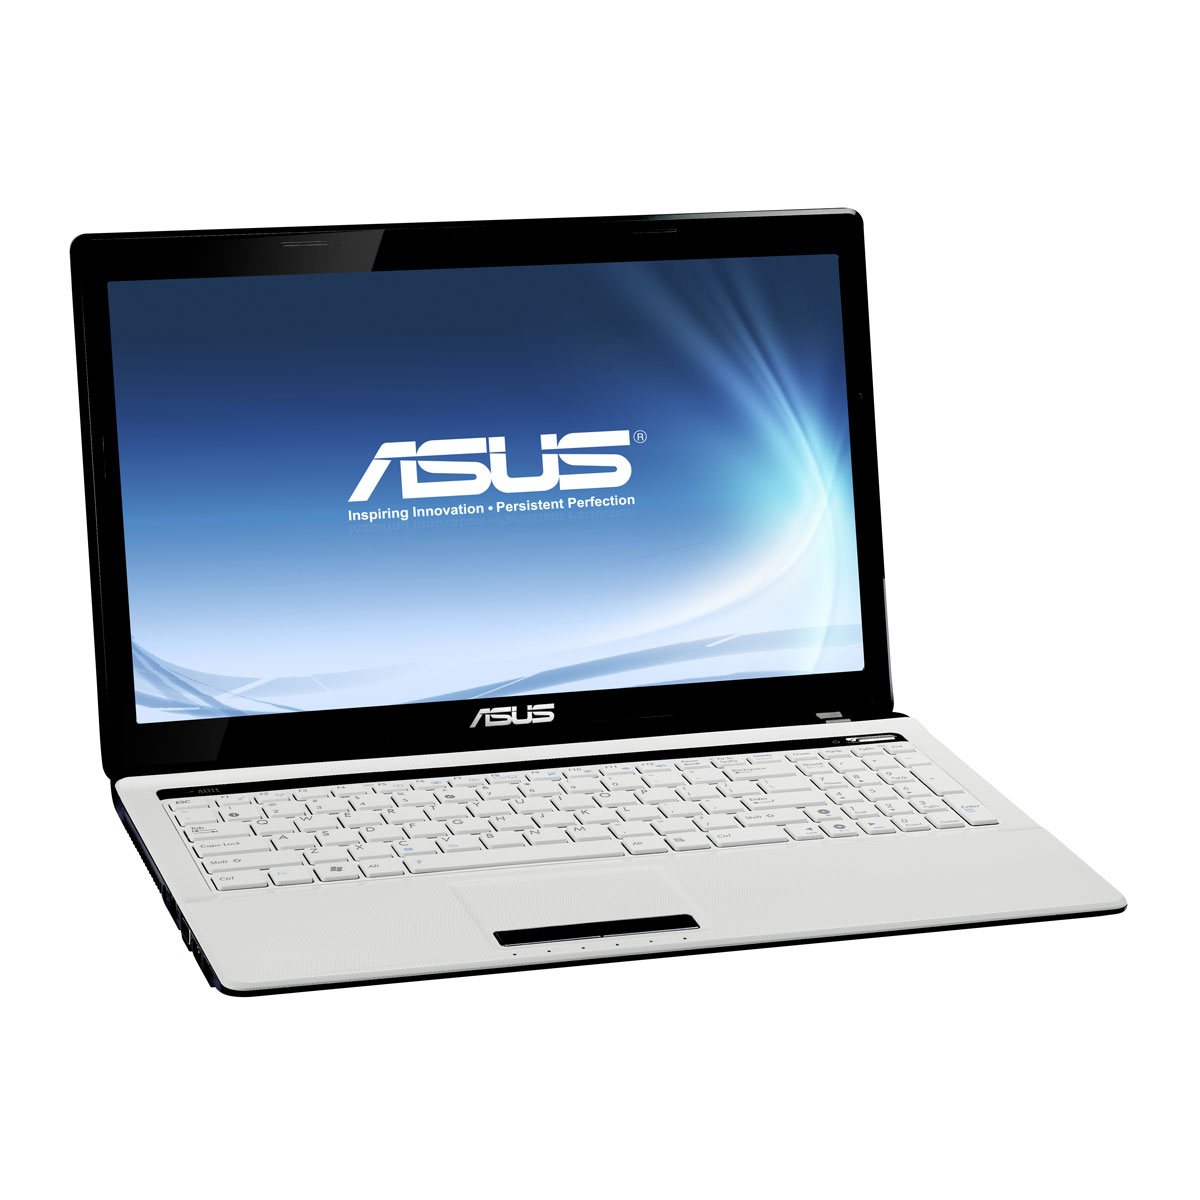 "PC portable ASUS K53SD-SX856V Blanc laqué Intel Core i3-2350M 4 Go 500 Go 15.6"" LED NVIDIA GeForce GT 610M Graveur DVD Wi-Fi N/Bluetooth Webcam Windows 7 Premium 64 bits (garantie constructeur 2 ans)"